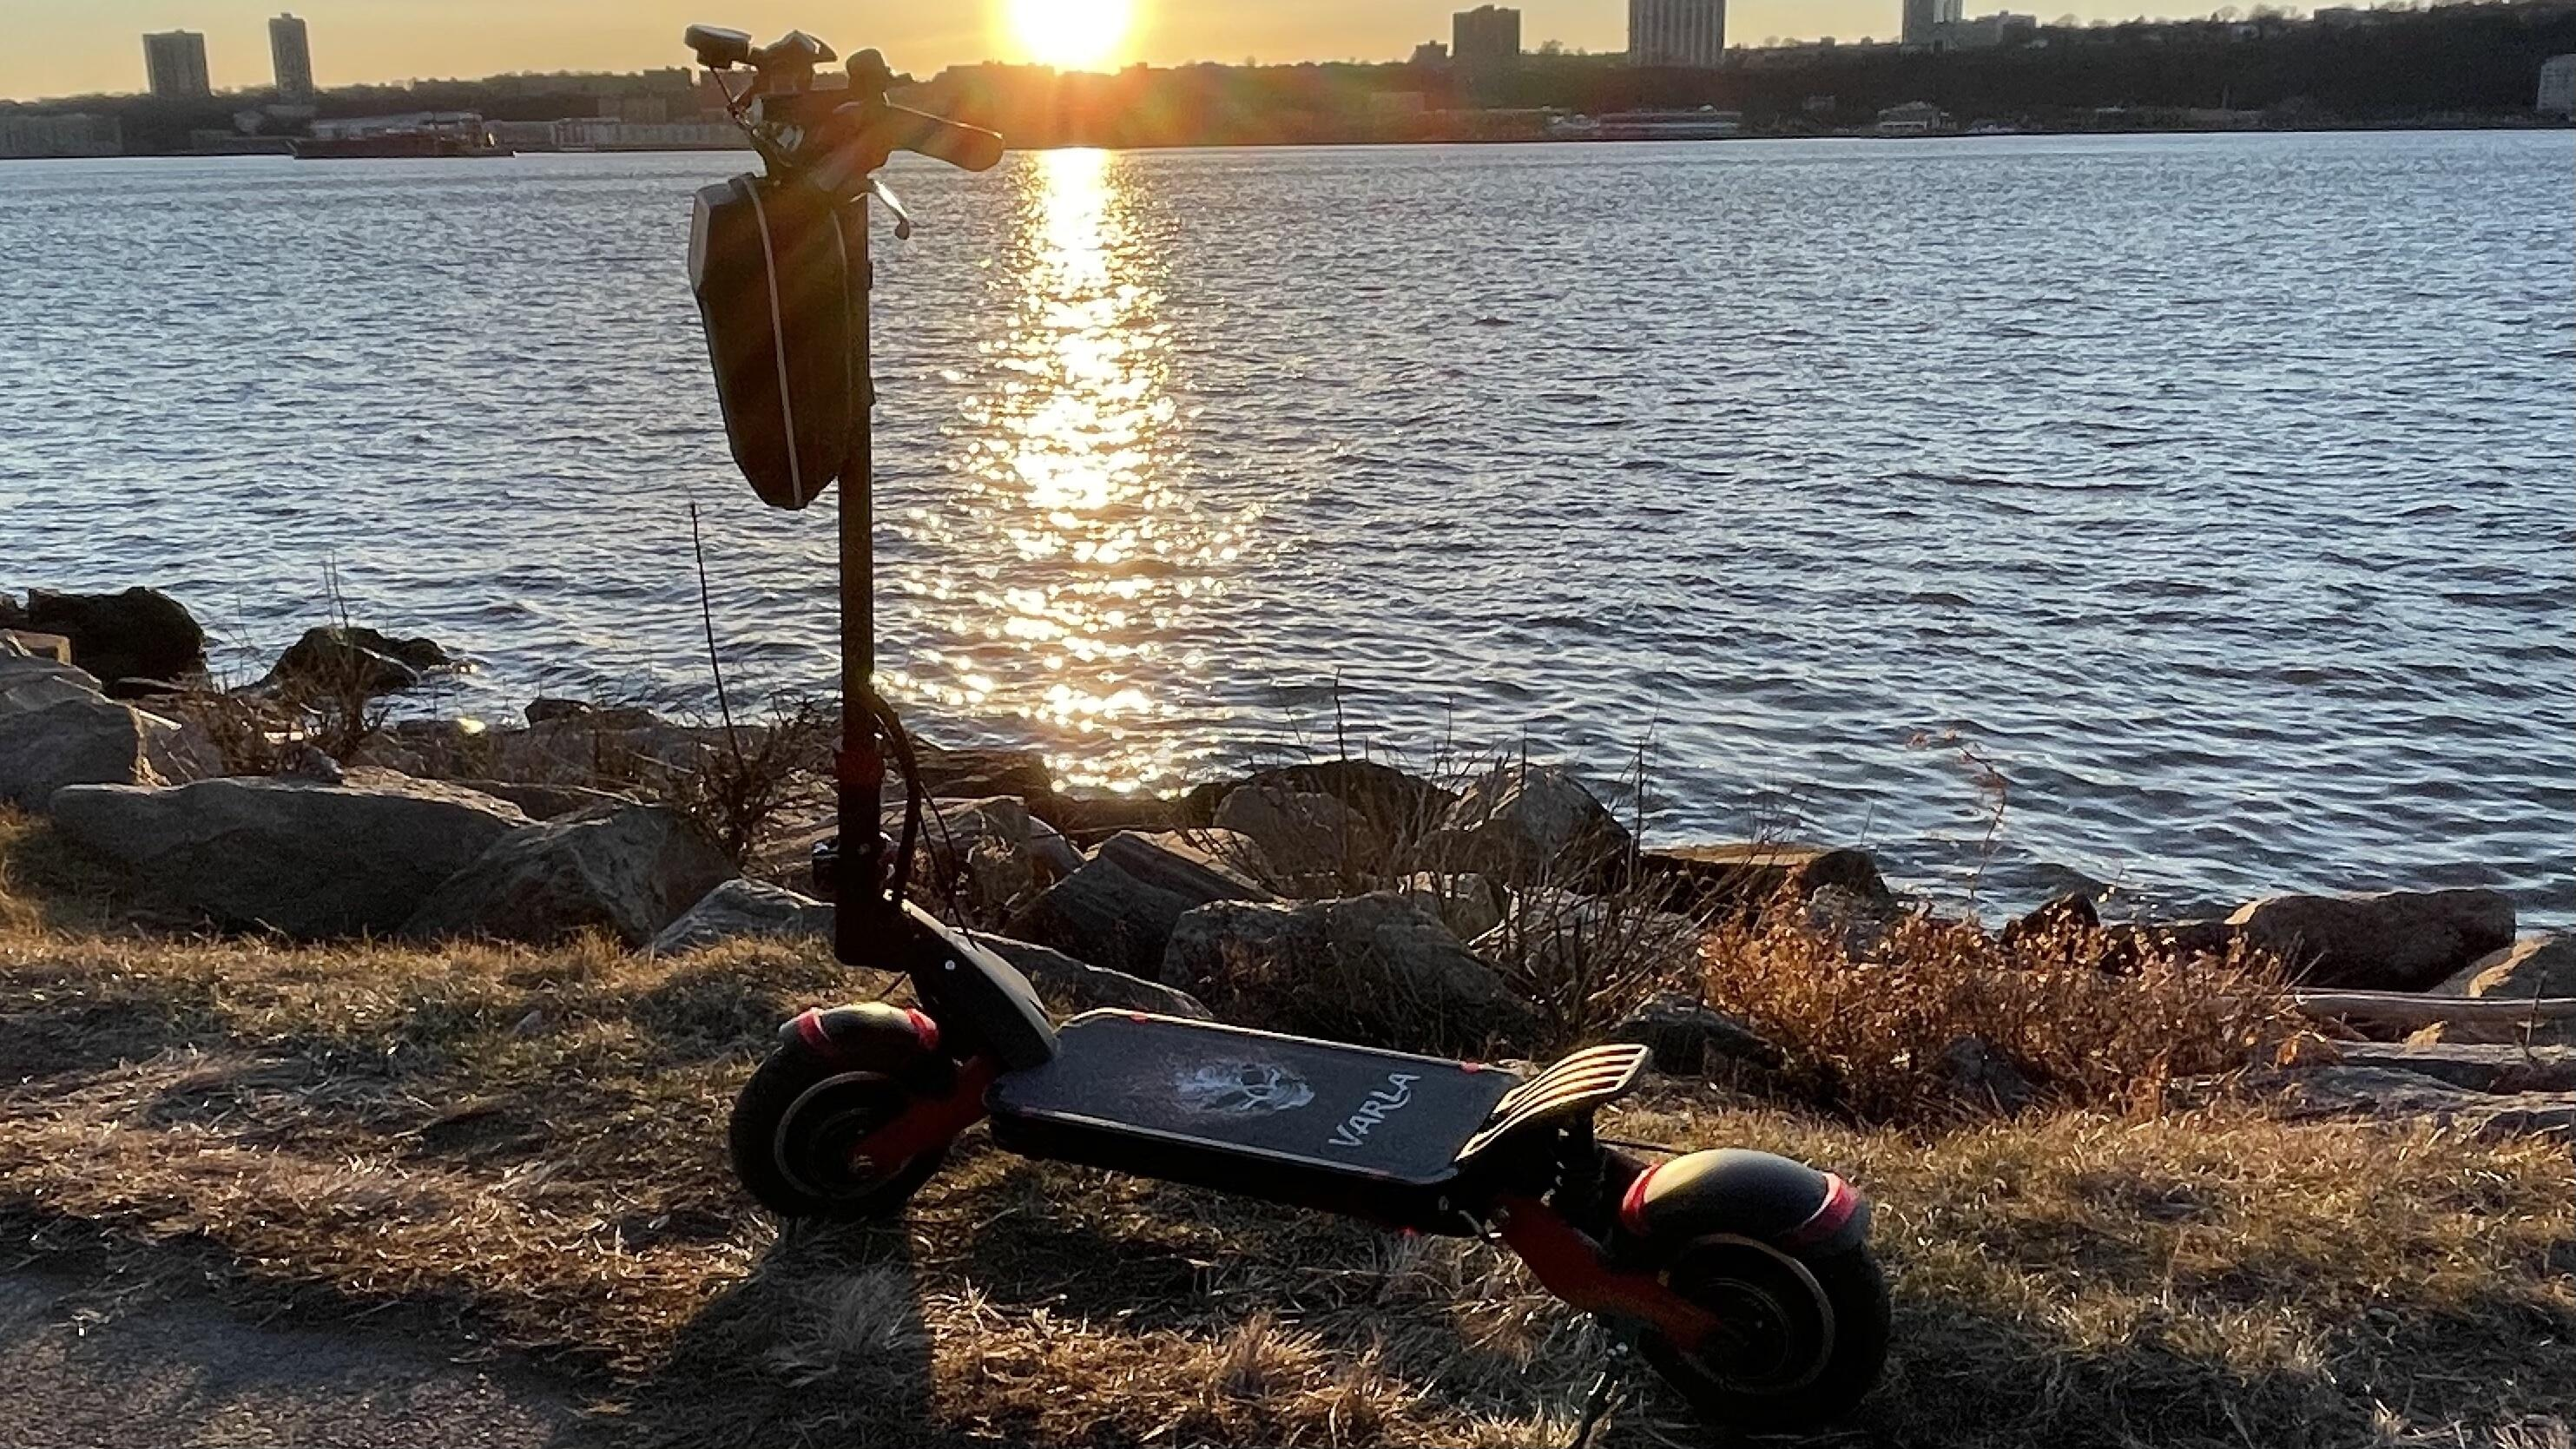 varla eagle one close up | Best electric scooter for summer 2021 - Roadshow | The Paradise